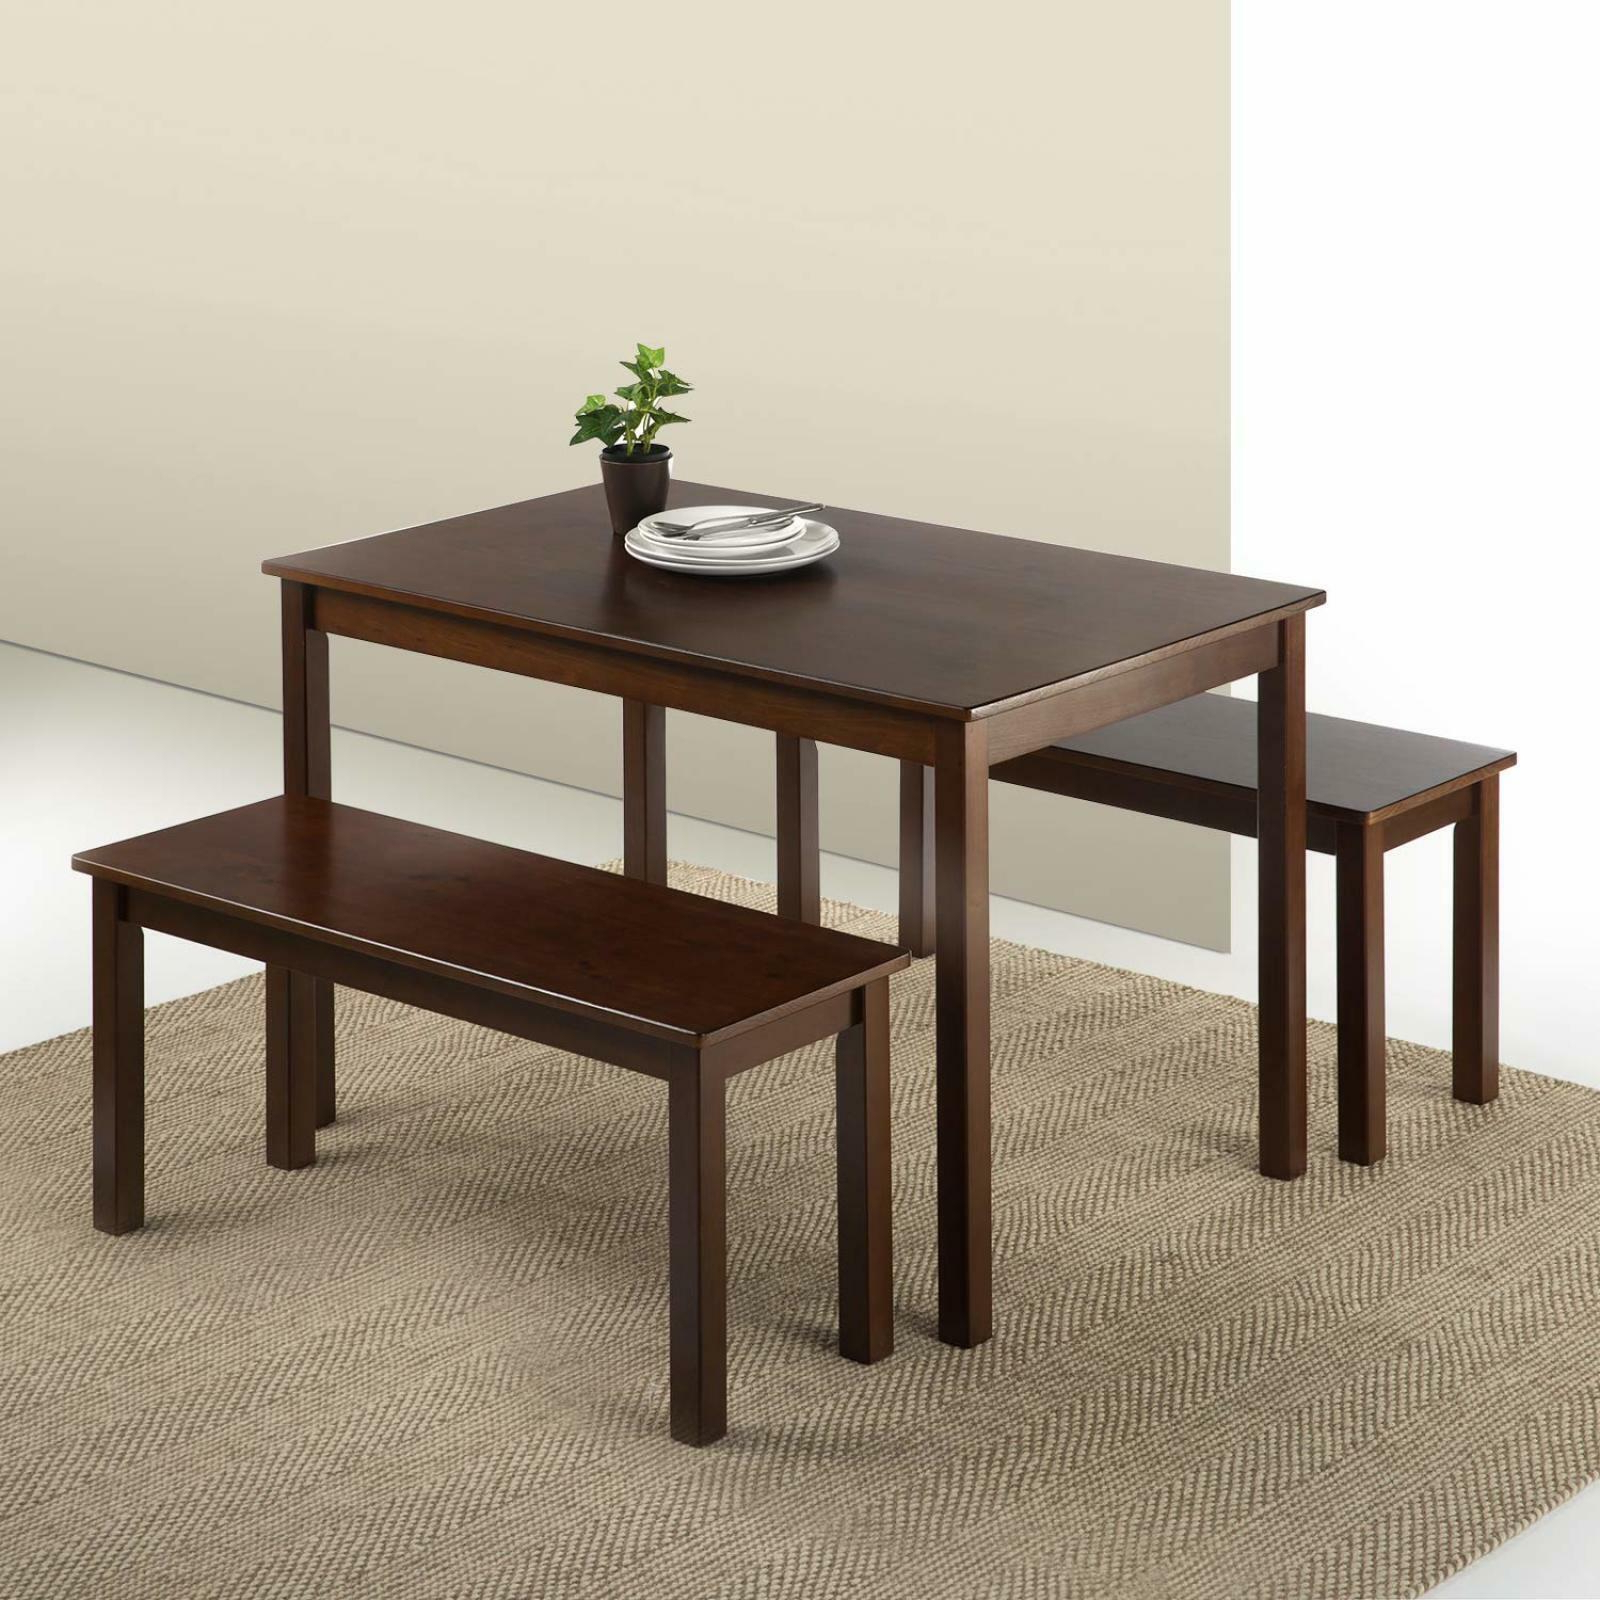 Widely Used Ligon 3 Piece Breakfast Nook Dining Sets With Espresso Wood Dining Table With 2 Benches/3 Piece Set Dining Set (View 19 of 20)